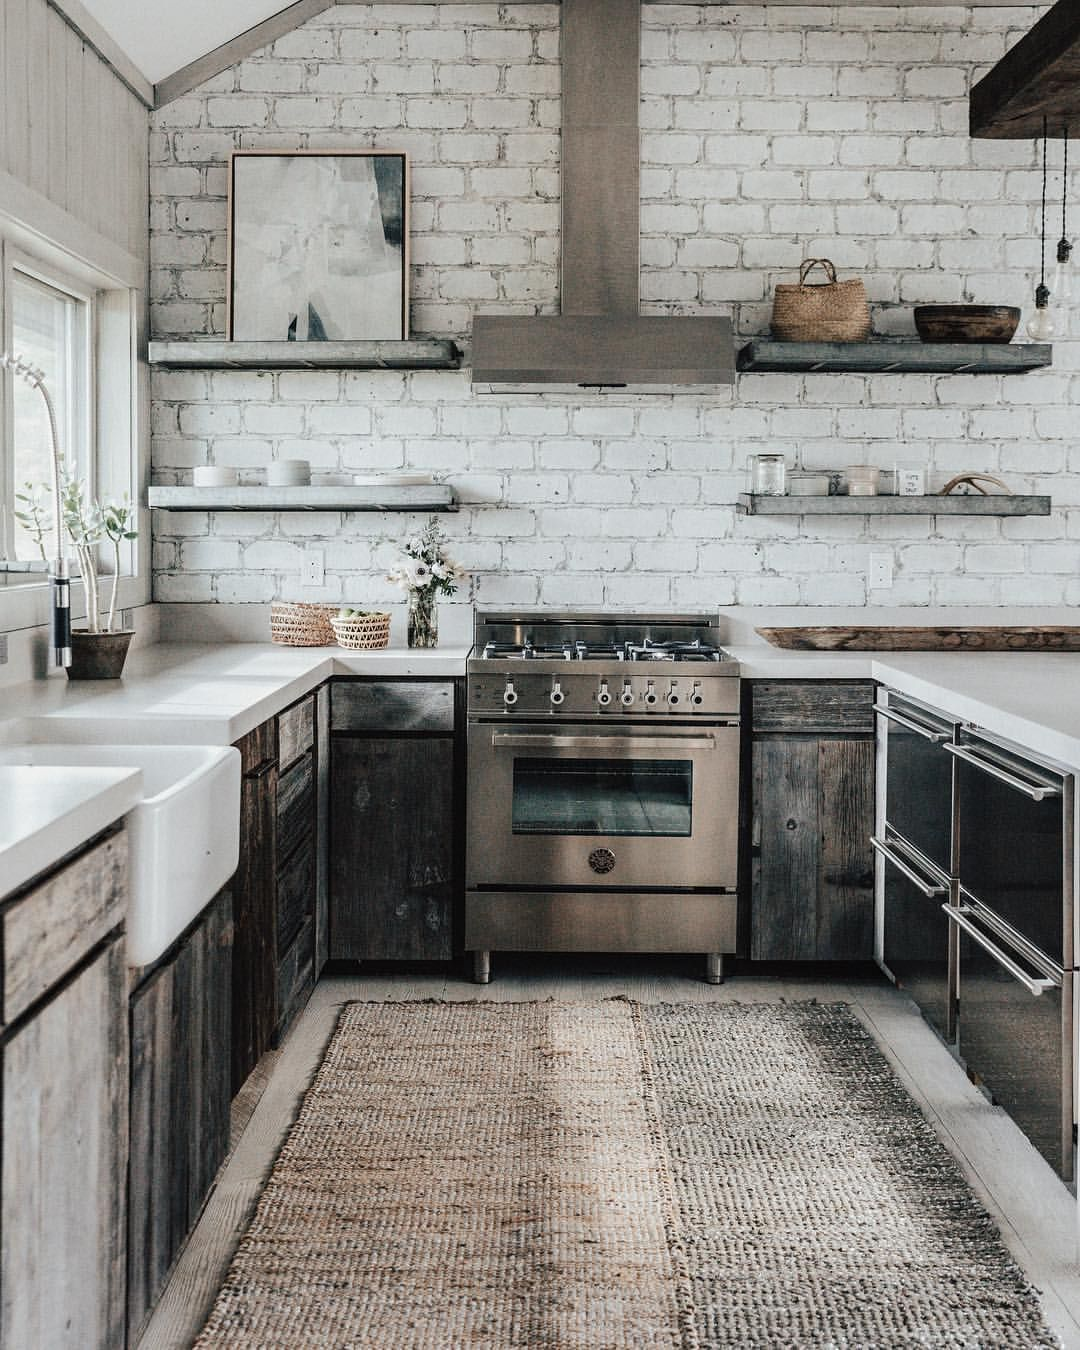 Le Roux Kitchen: Rustic Kitchen. Are Those Galvanized Metal Shelves